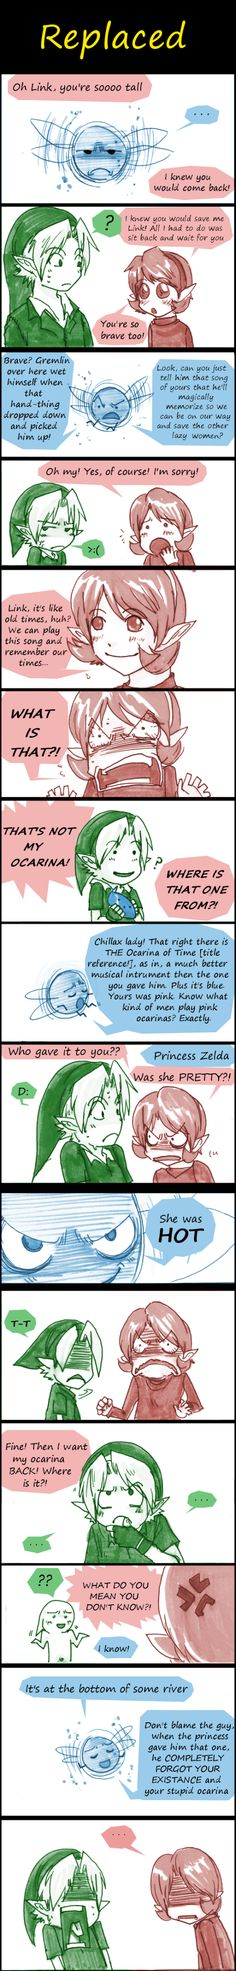 "Adult Link, Navi the fairy, and Saria - The Legend of Zelda: Ocarina of Time; funny comic by =AKUMA-Y0RU on deviantART, ""Replaced"""